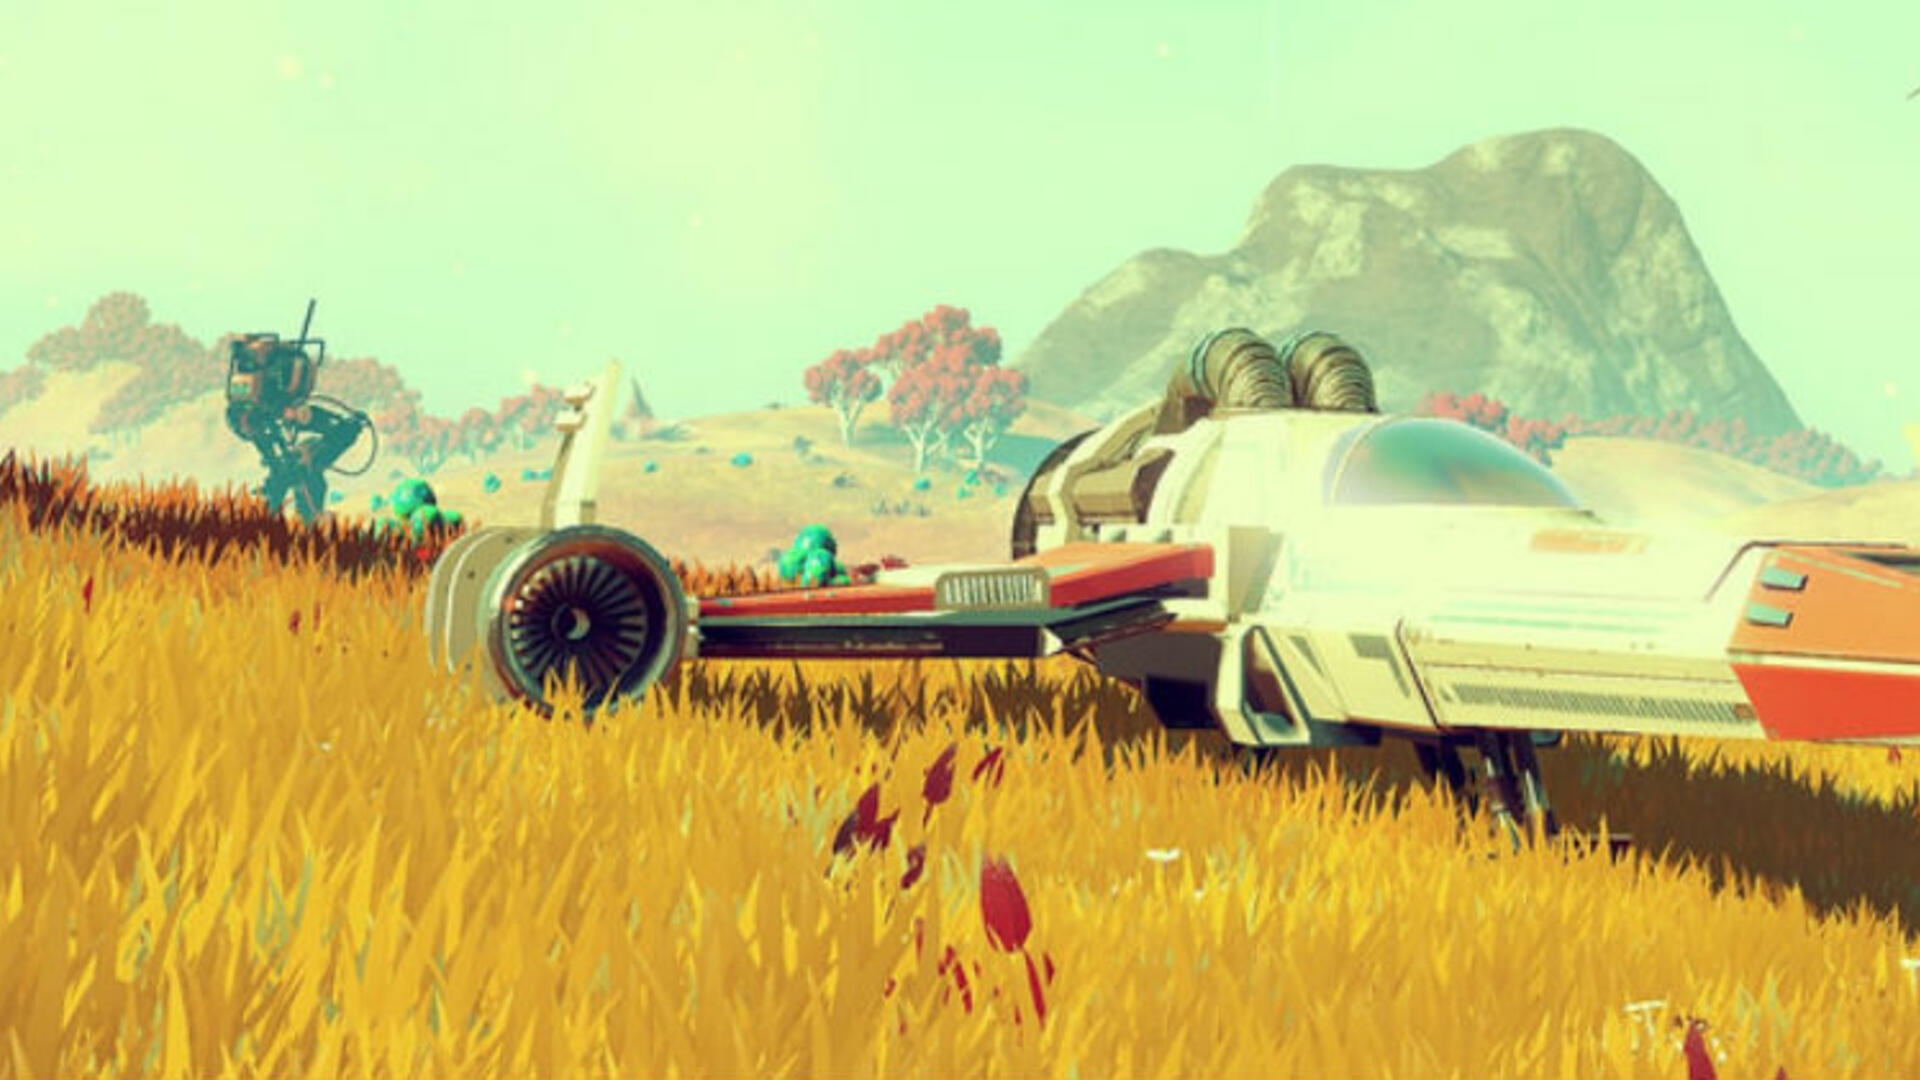 No Man's Sky - How to Name Planets and Star Systems